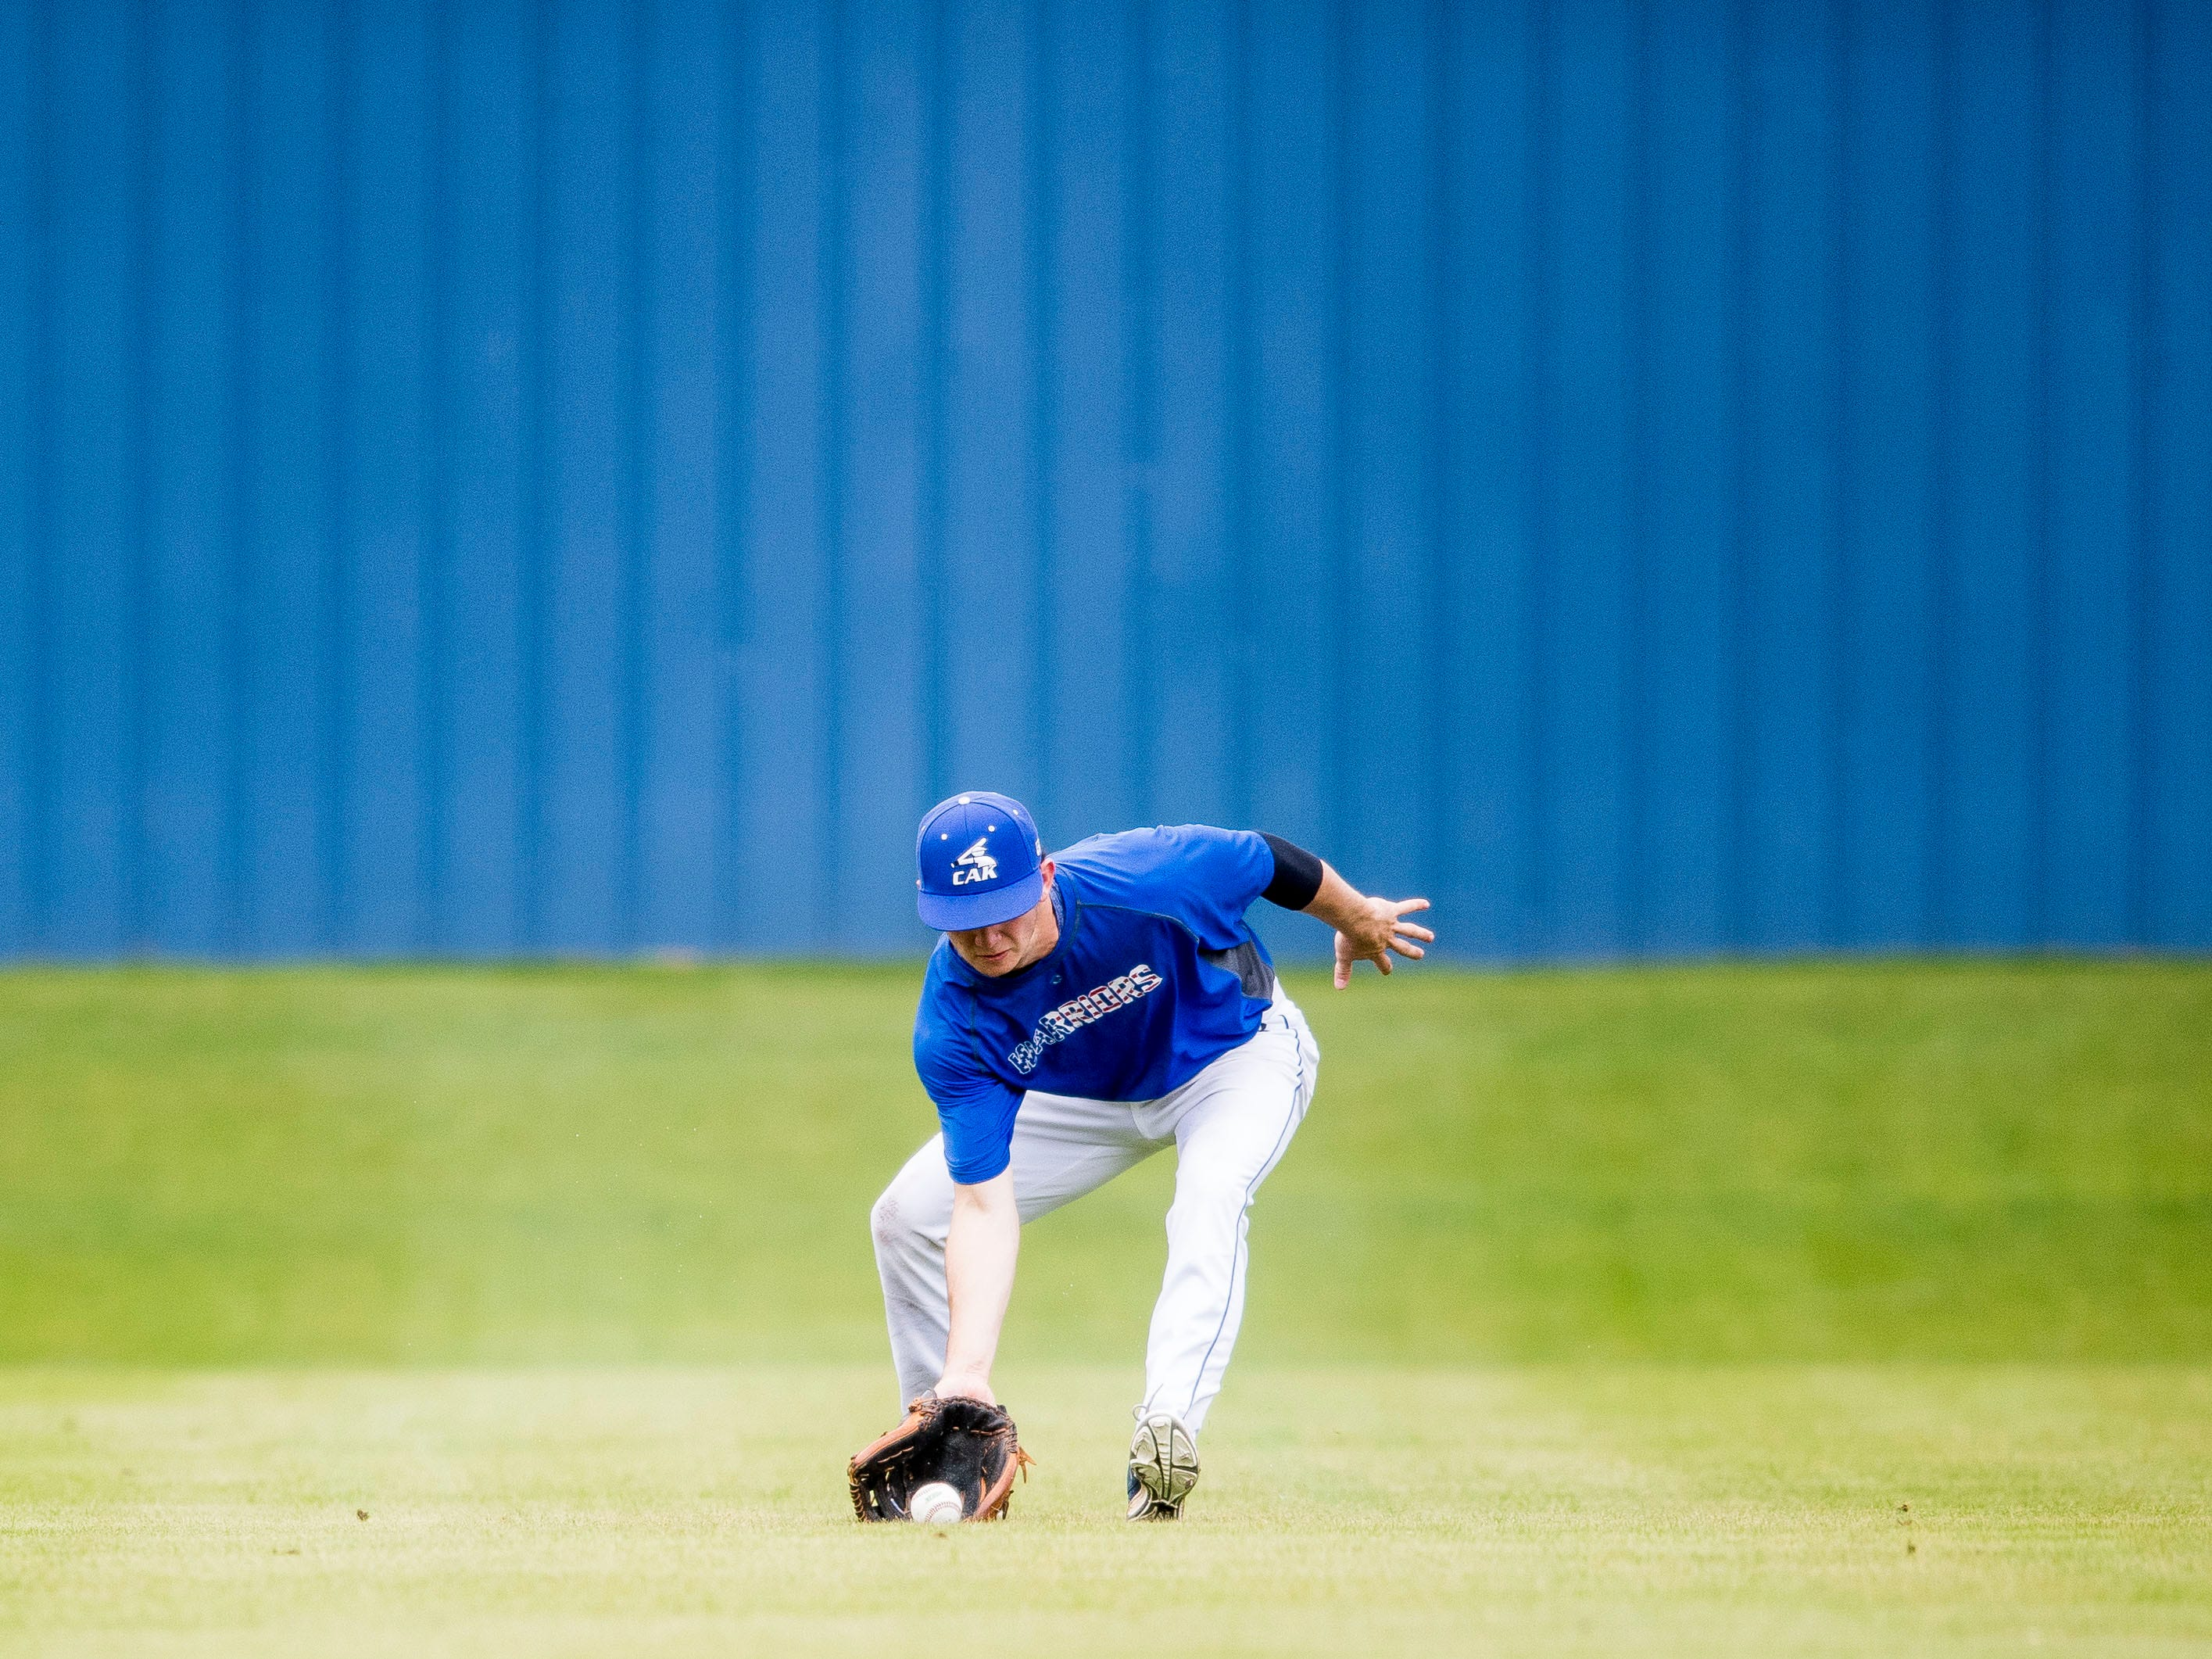 CAK's Zane Keener fields the ball during a baseball game between CAK and Bartlett held at CAK in Knoxville on Friday, April 29, 2019.